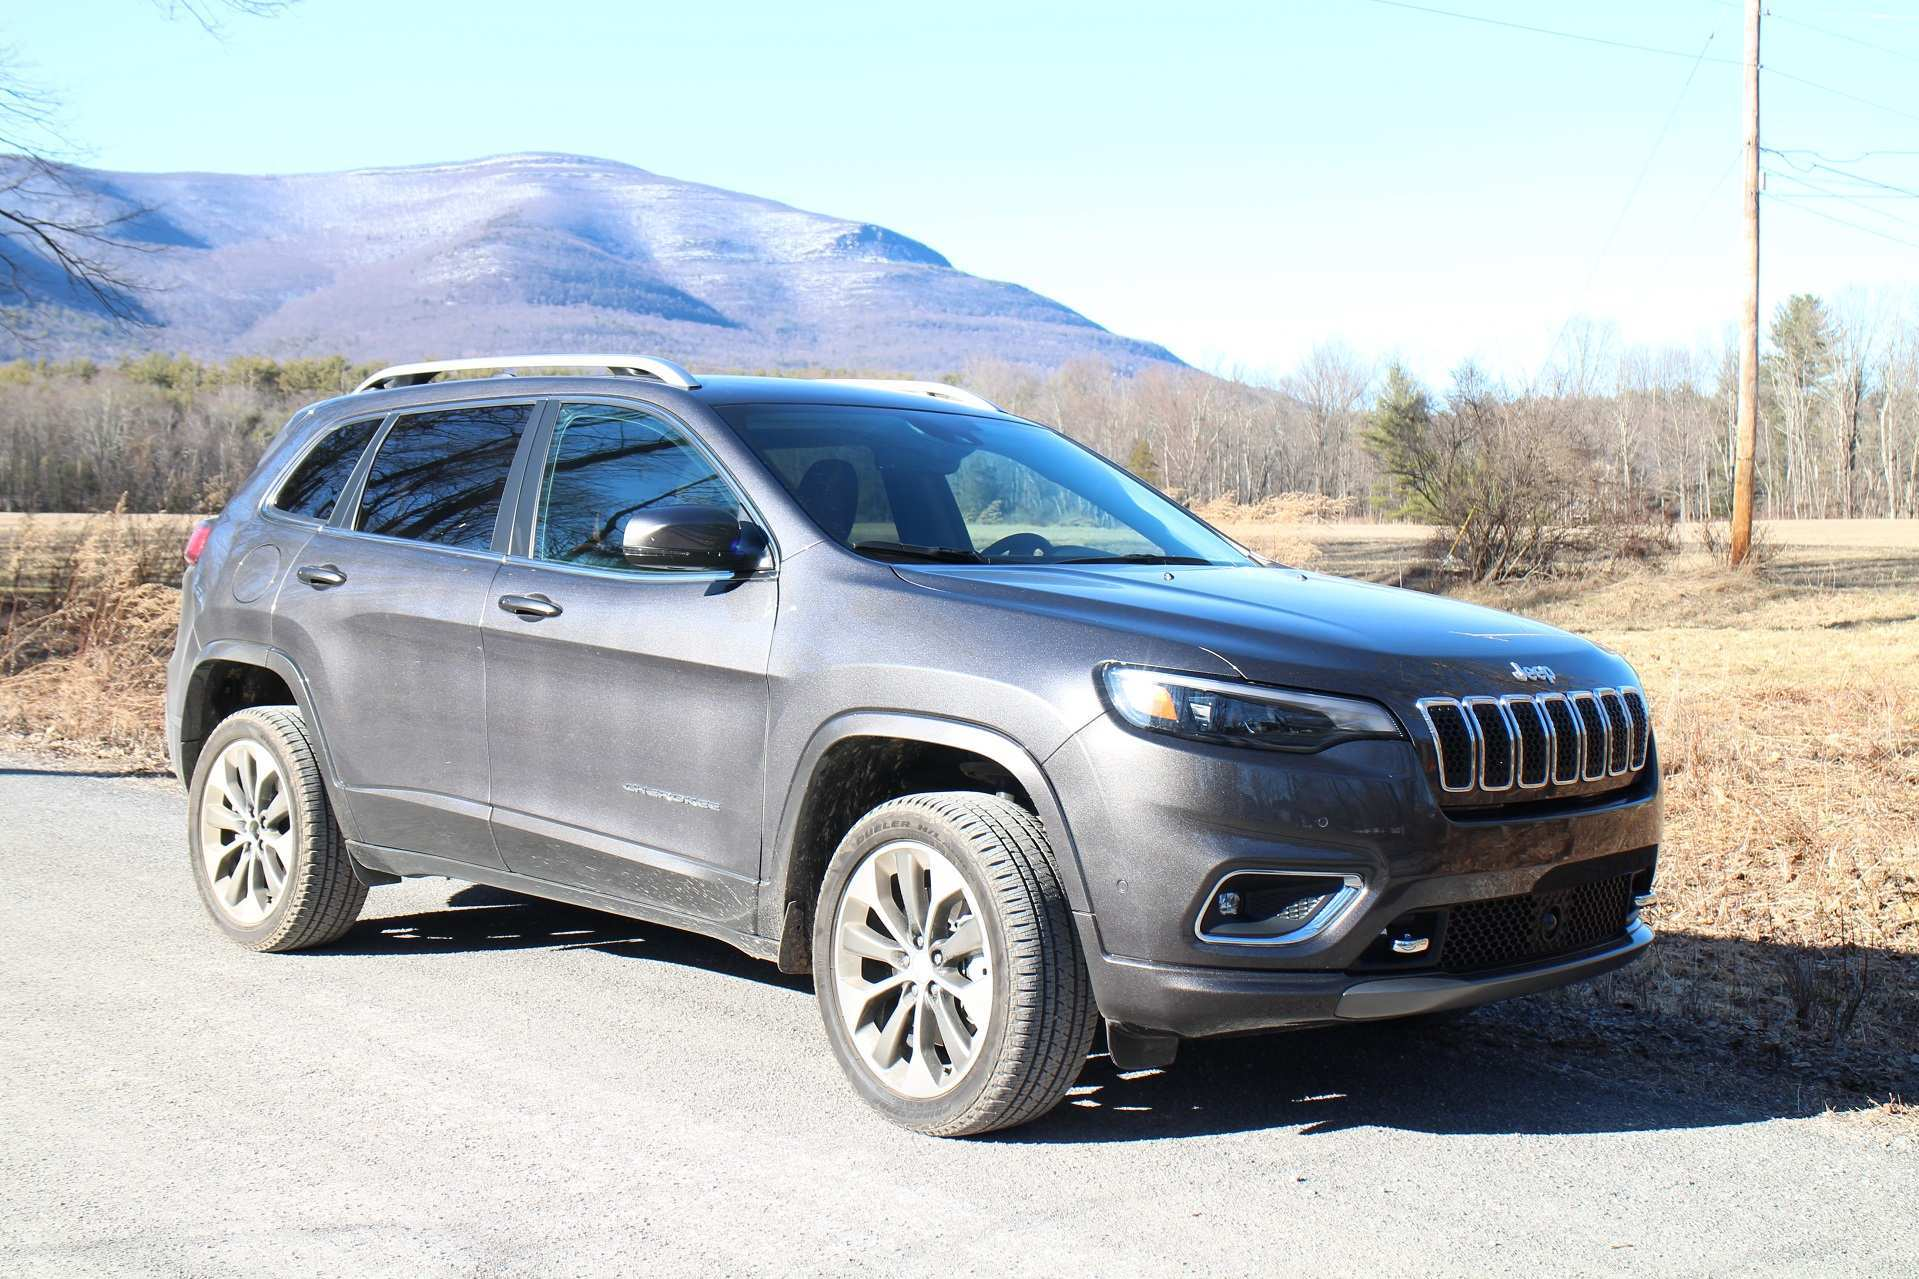 13 All New 2019 Jeep Diesel Mpg Reviews for 2019 Jeep Diesel Mpg